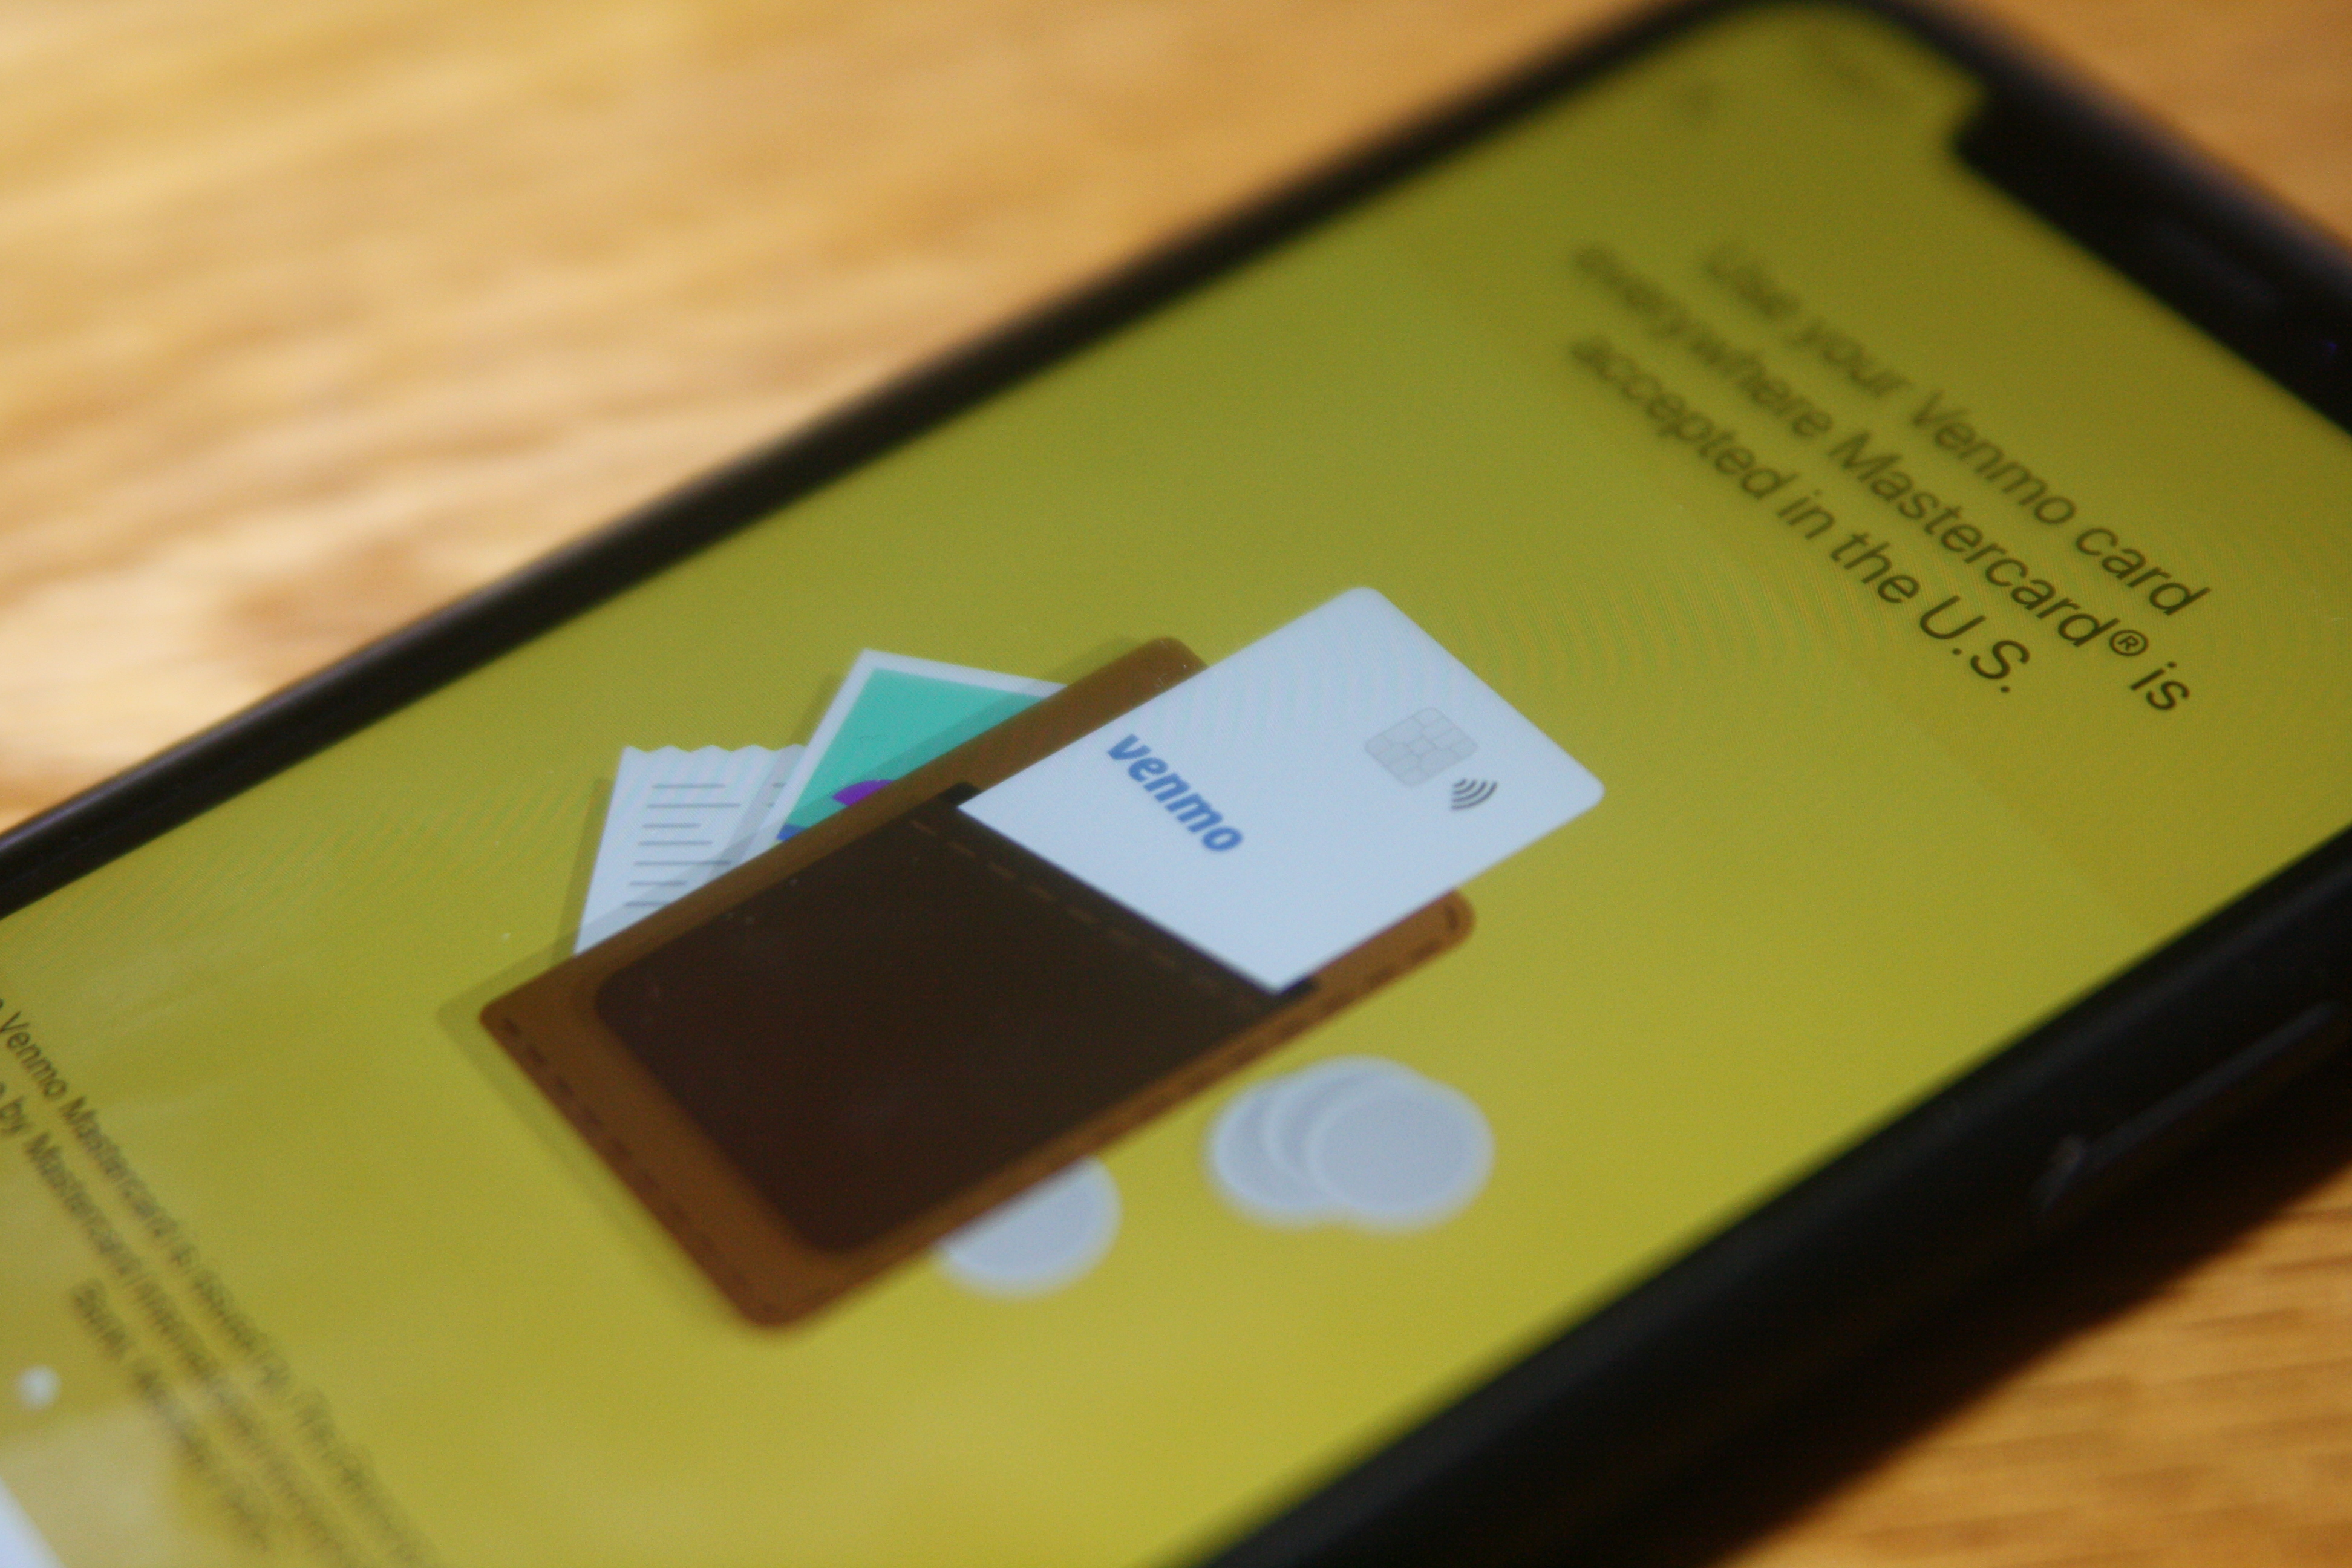 What You Can and Cannot Do With the Venmo Debit Card